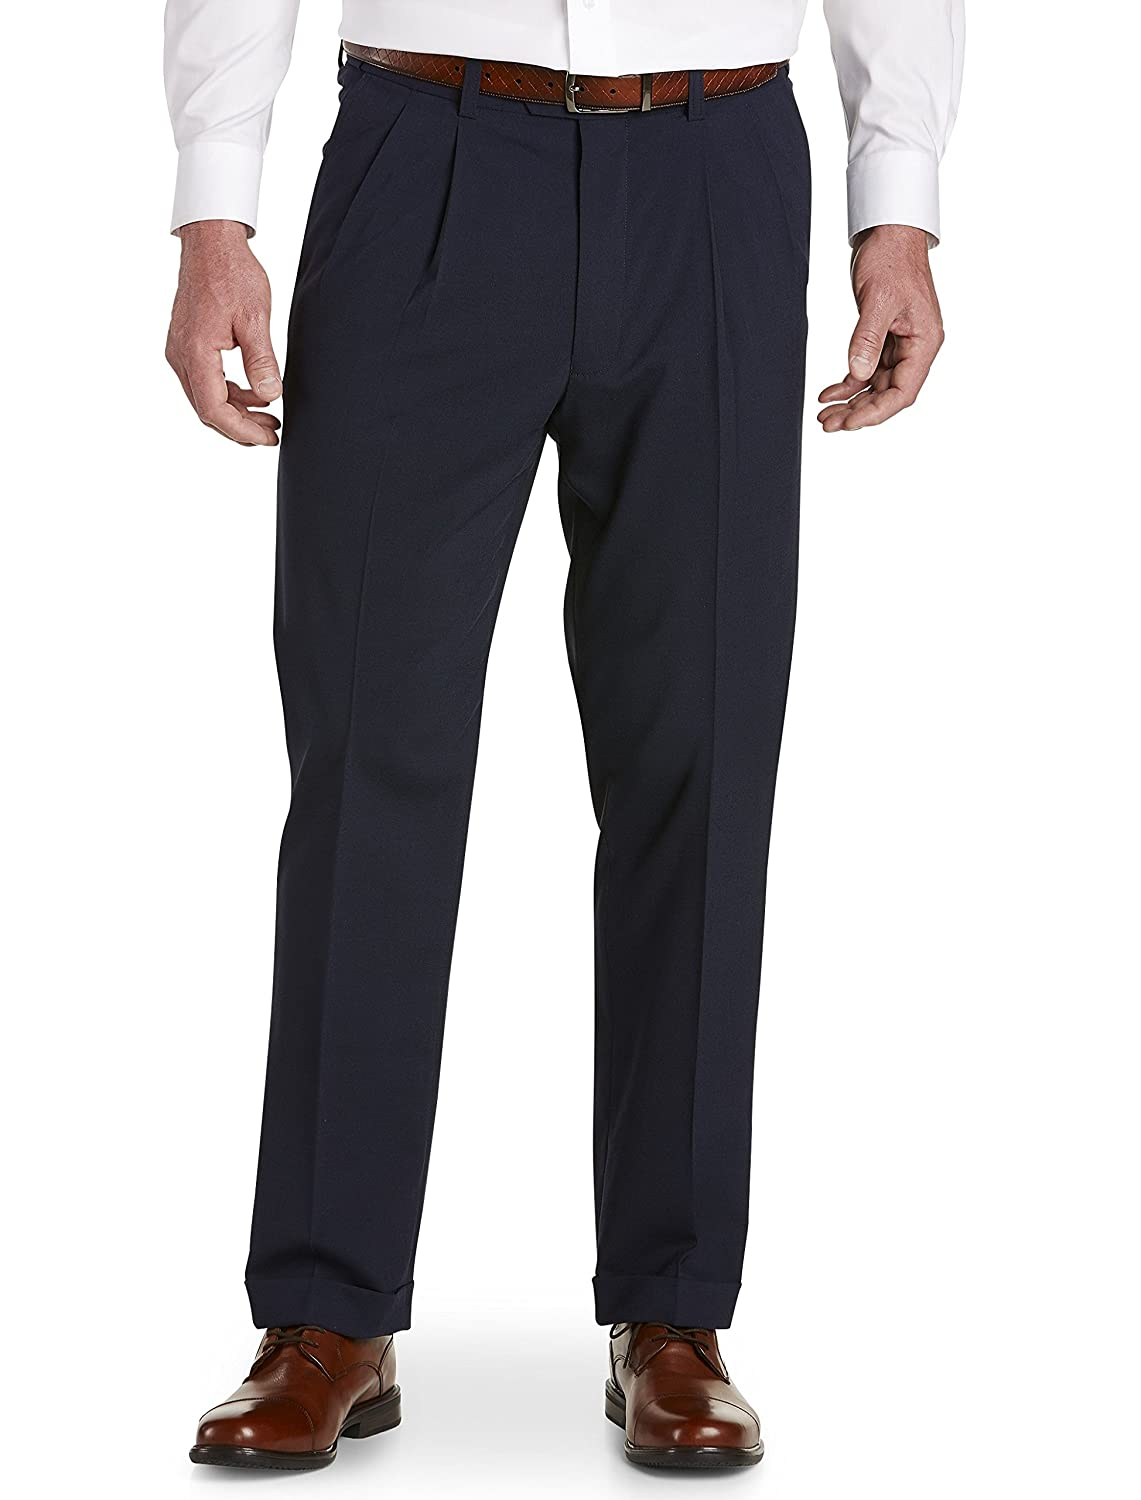 Gold Series by DXL Big and Tall Waist-Relaxer Hemmed Pleated Suit Pants